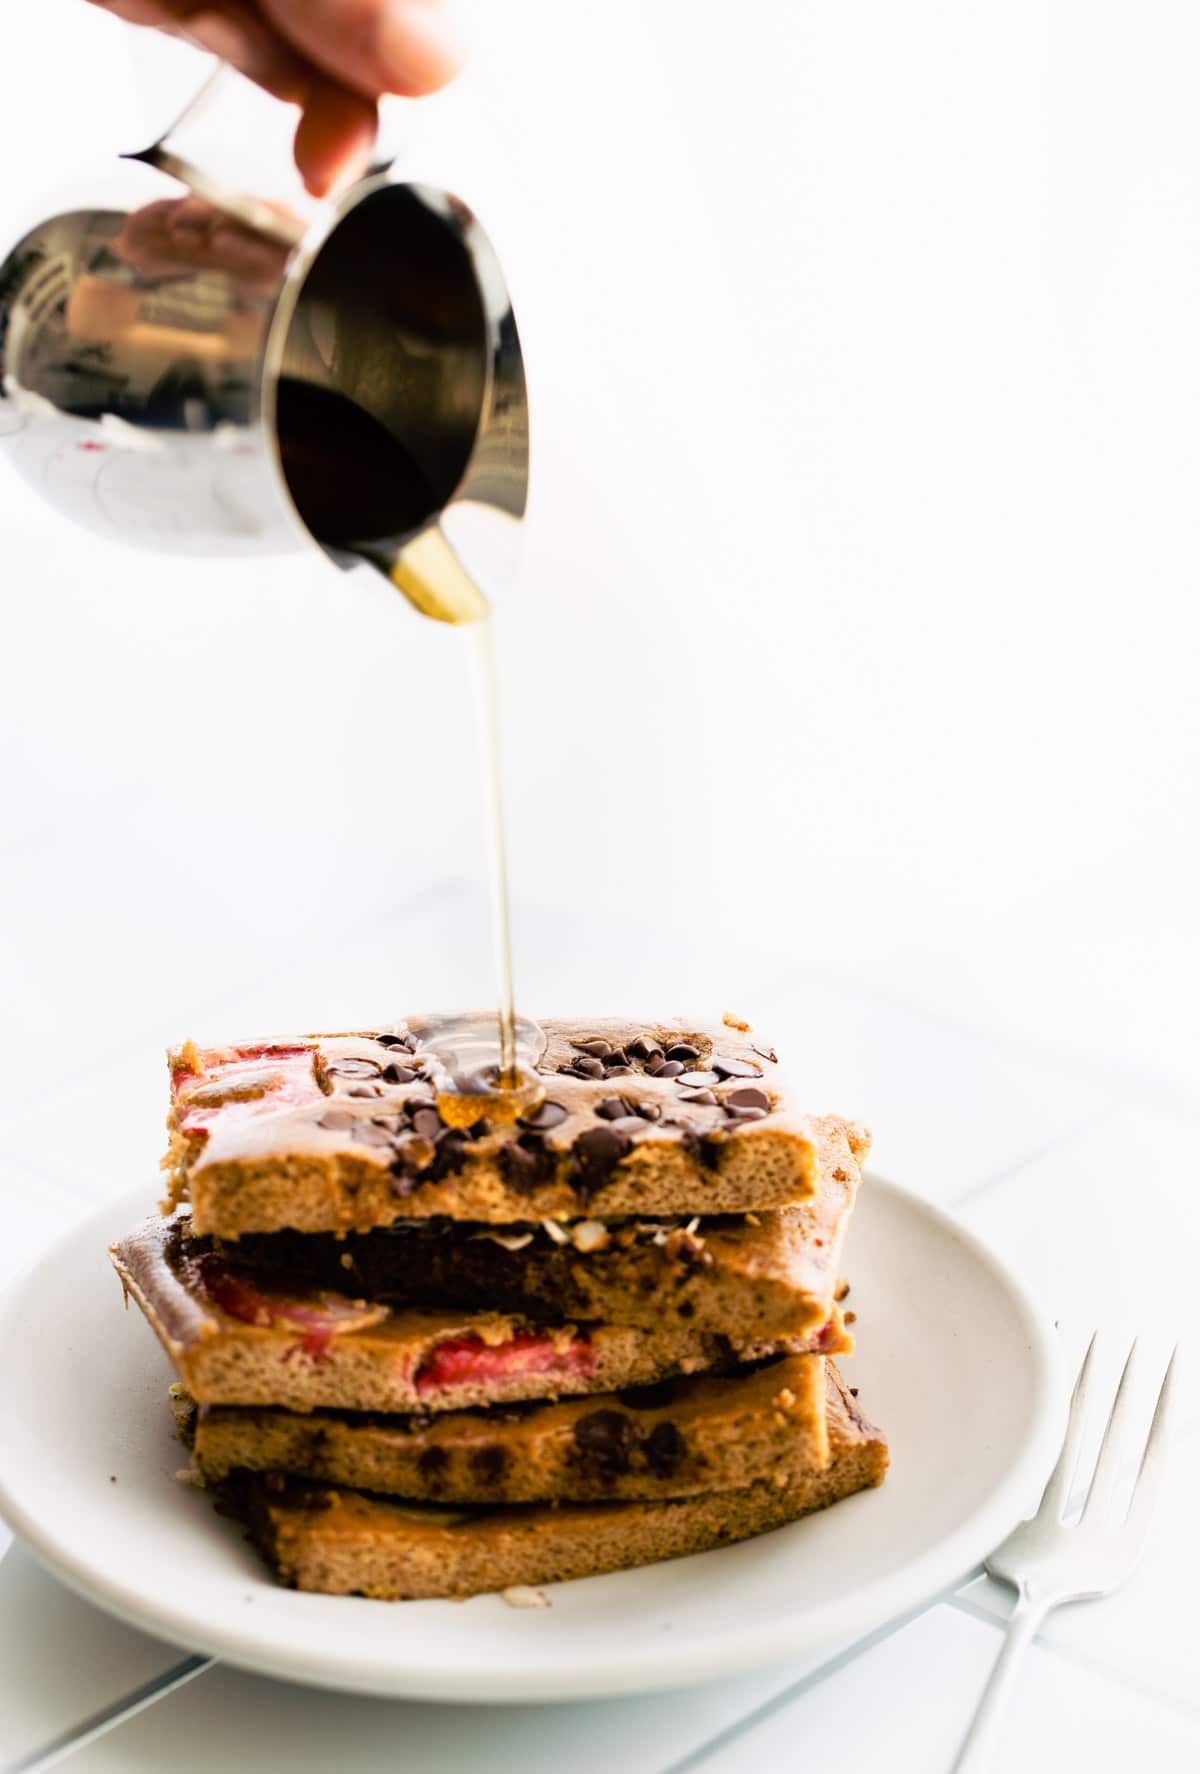 pouring syrup over stack of sheet pan pancakes on a plate